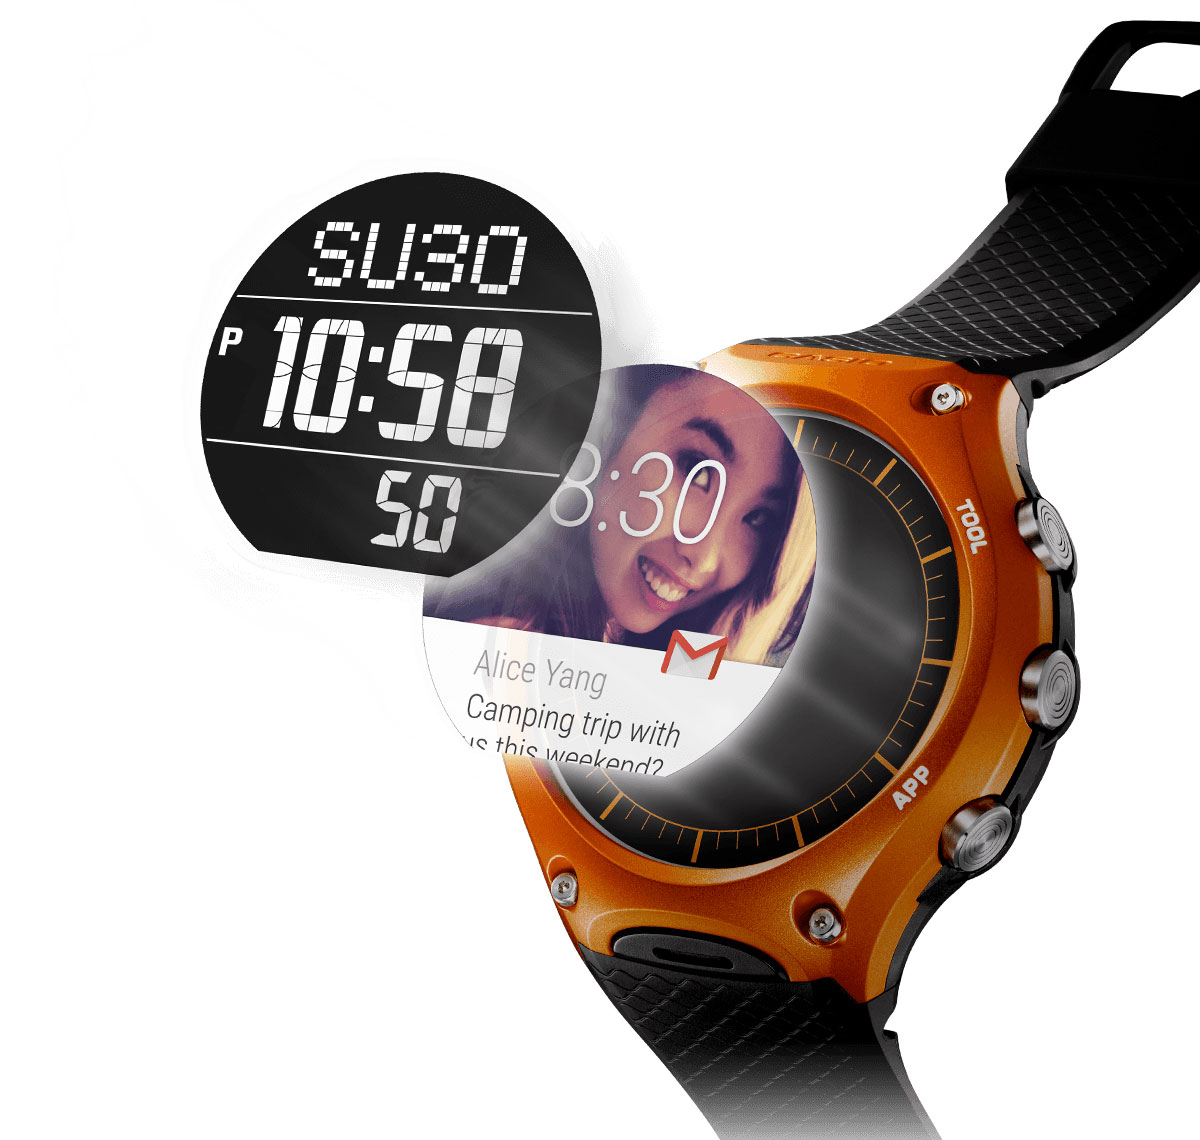 news-casio-wsd-f10-smartwatch-2